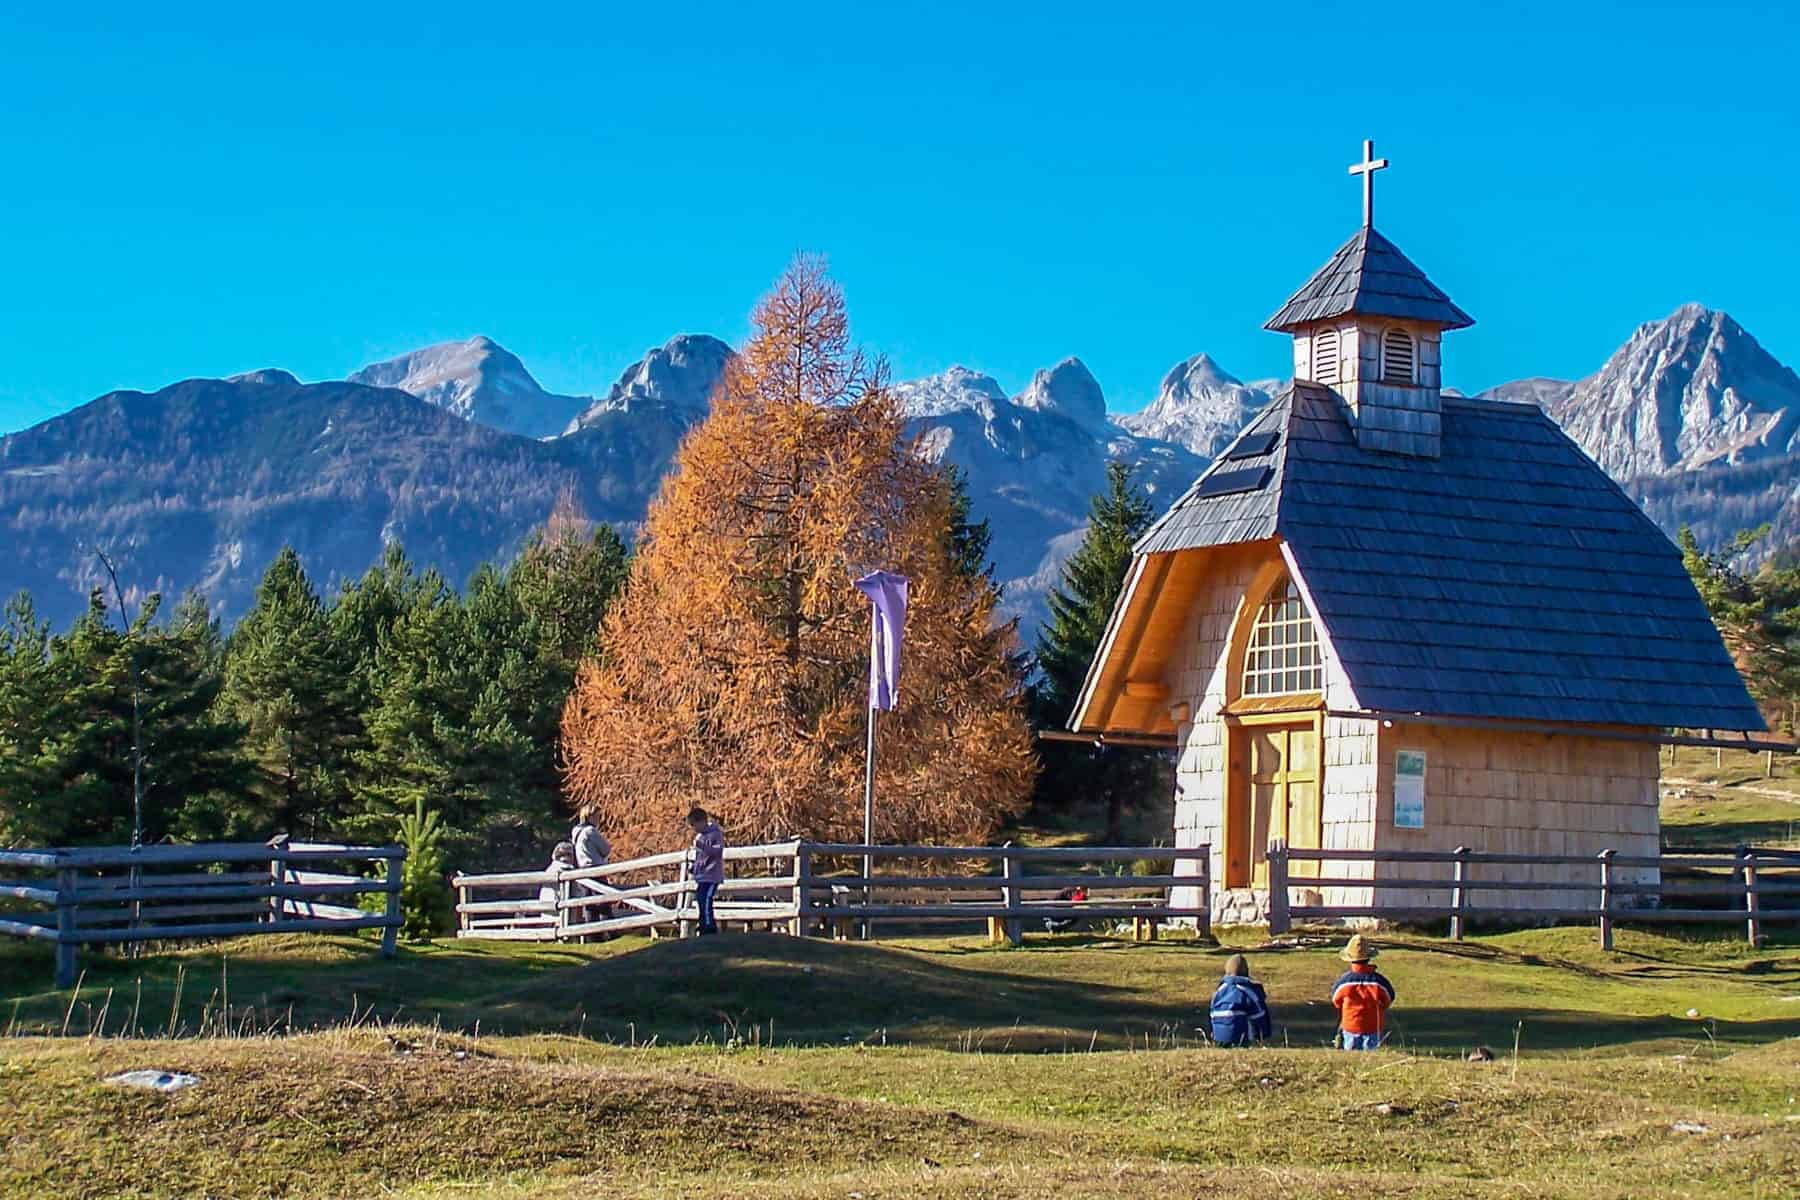 Our Lady Queen of Peace chapel in the Uskovnica Alpine Meadow, Pokljuka Plateau, Triglav National Park